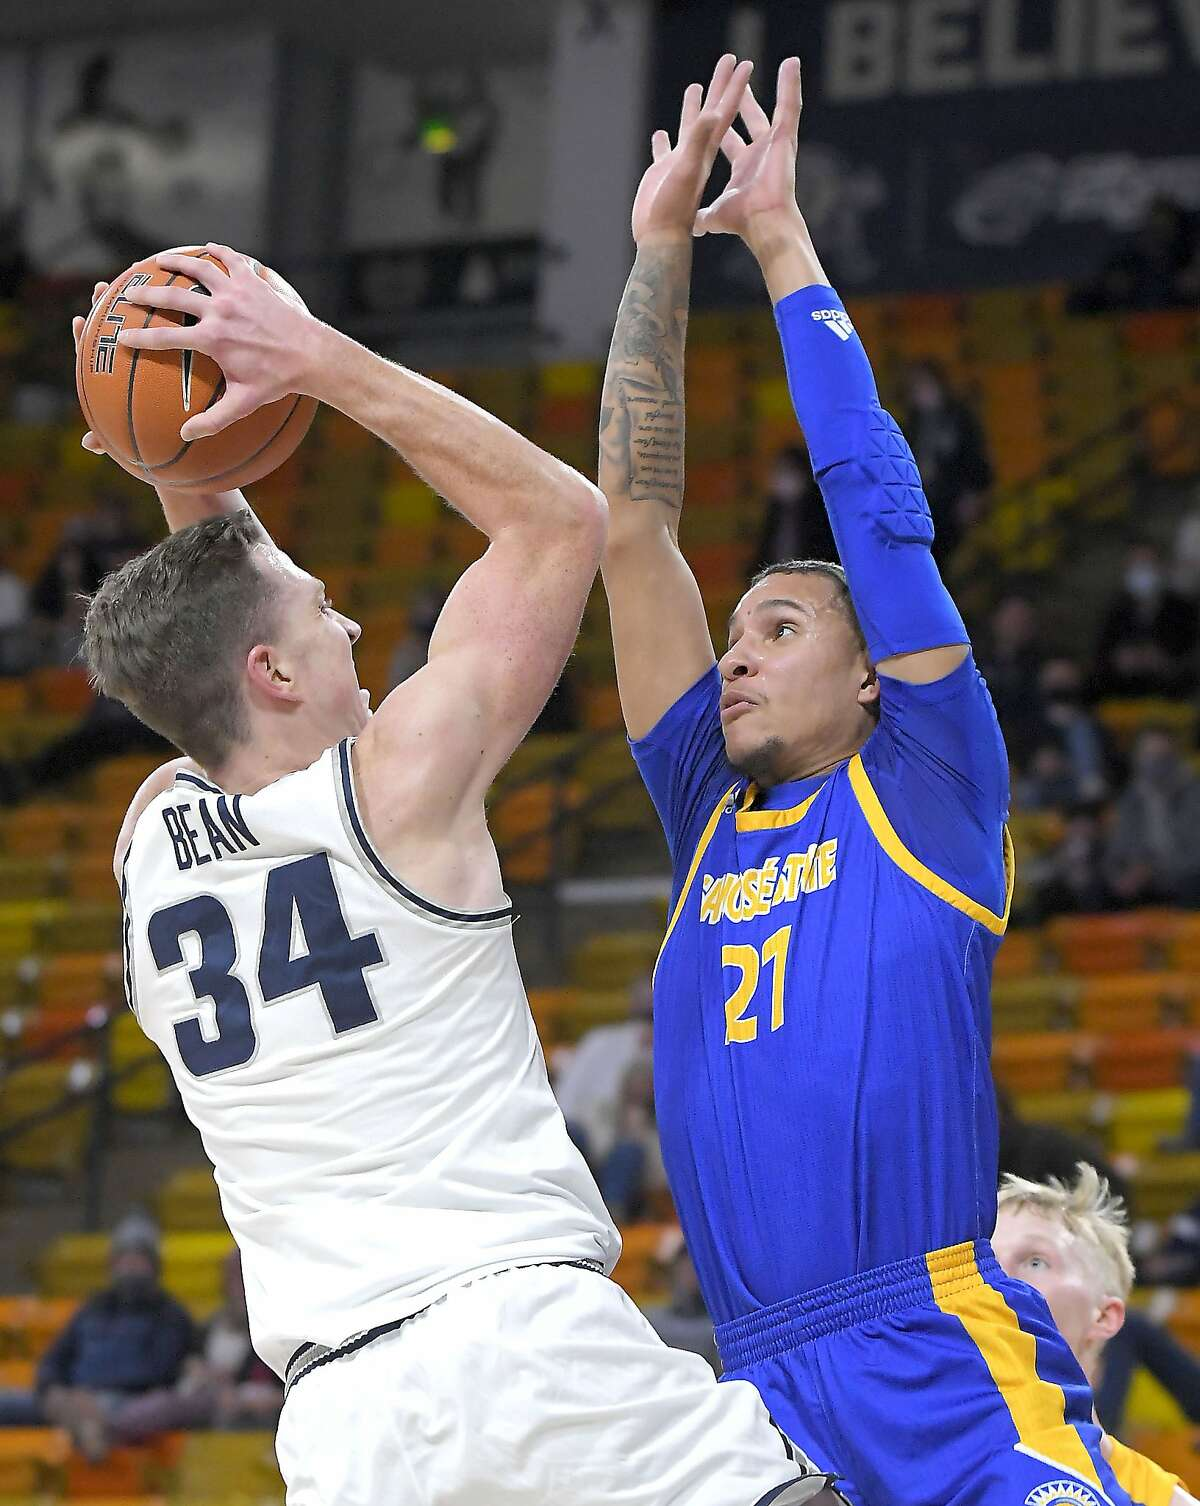 Utah State forward Justin Bean (34) shoots as San Jose State guard Kaison Hammonds (21) defends during the first half of an NCAA college basketball game Monday, Dec. 21, 2020, in Logan, Utah. (Eli Lucero/The Herald Journal via AP, Pool)